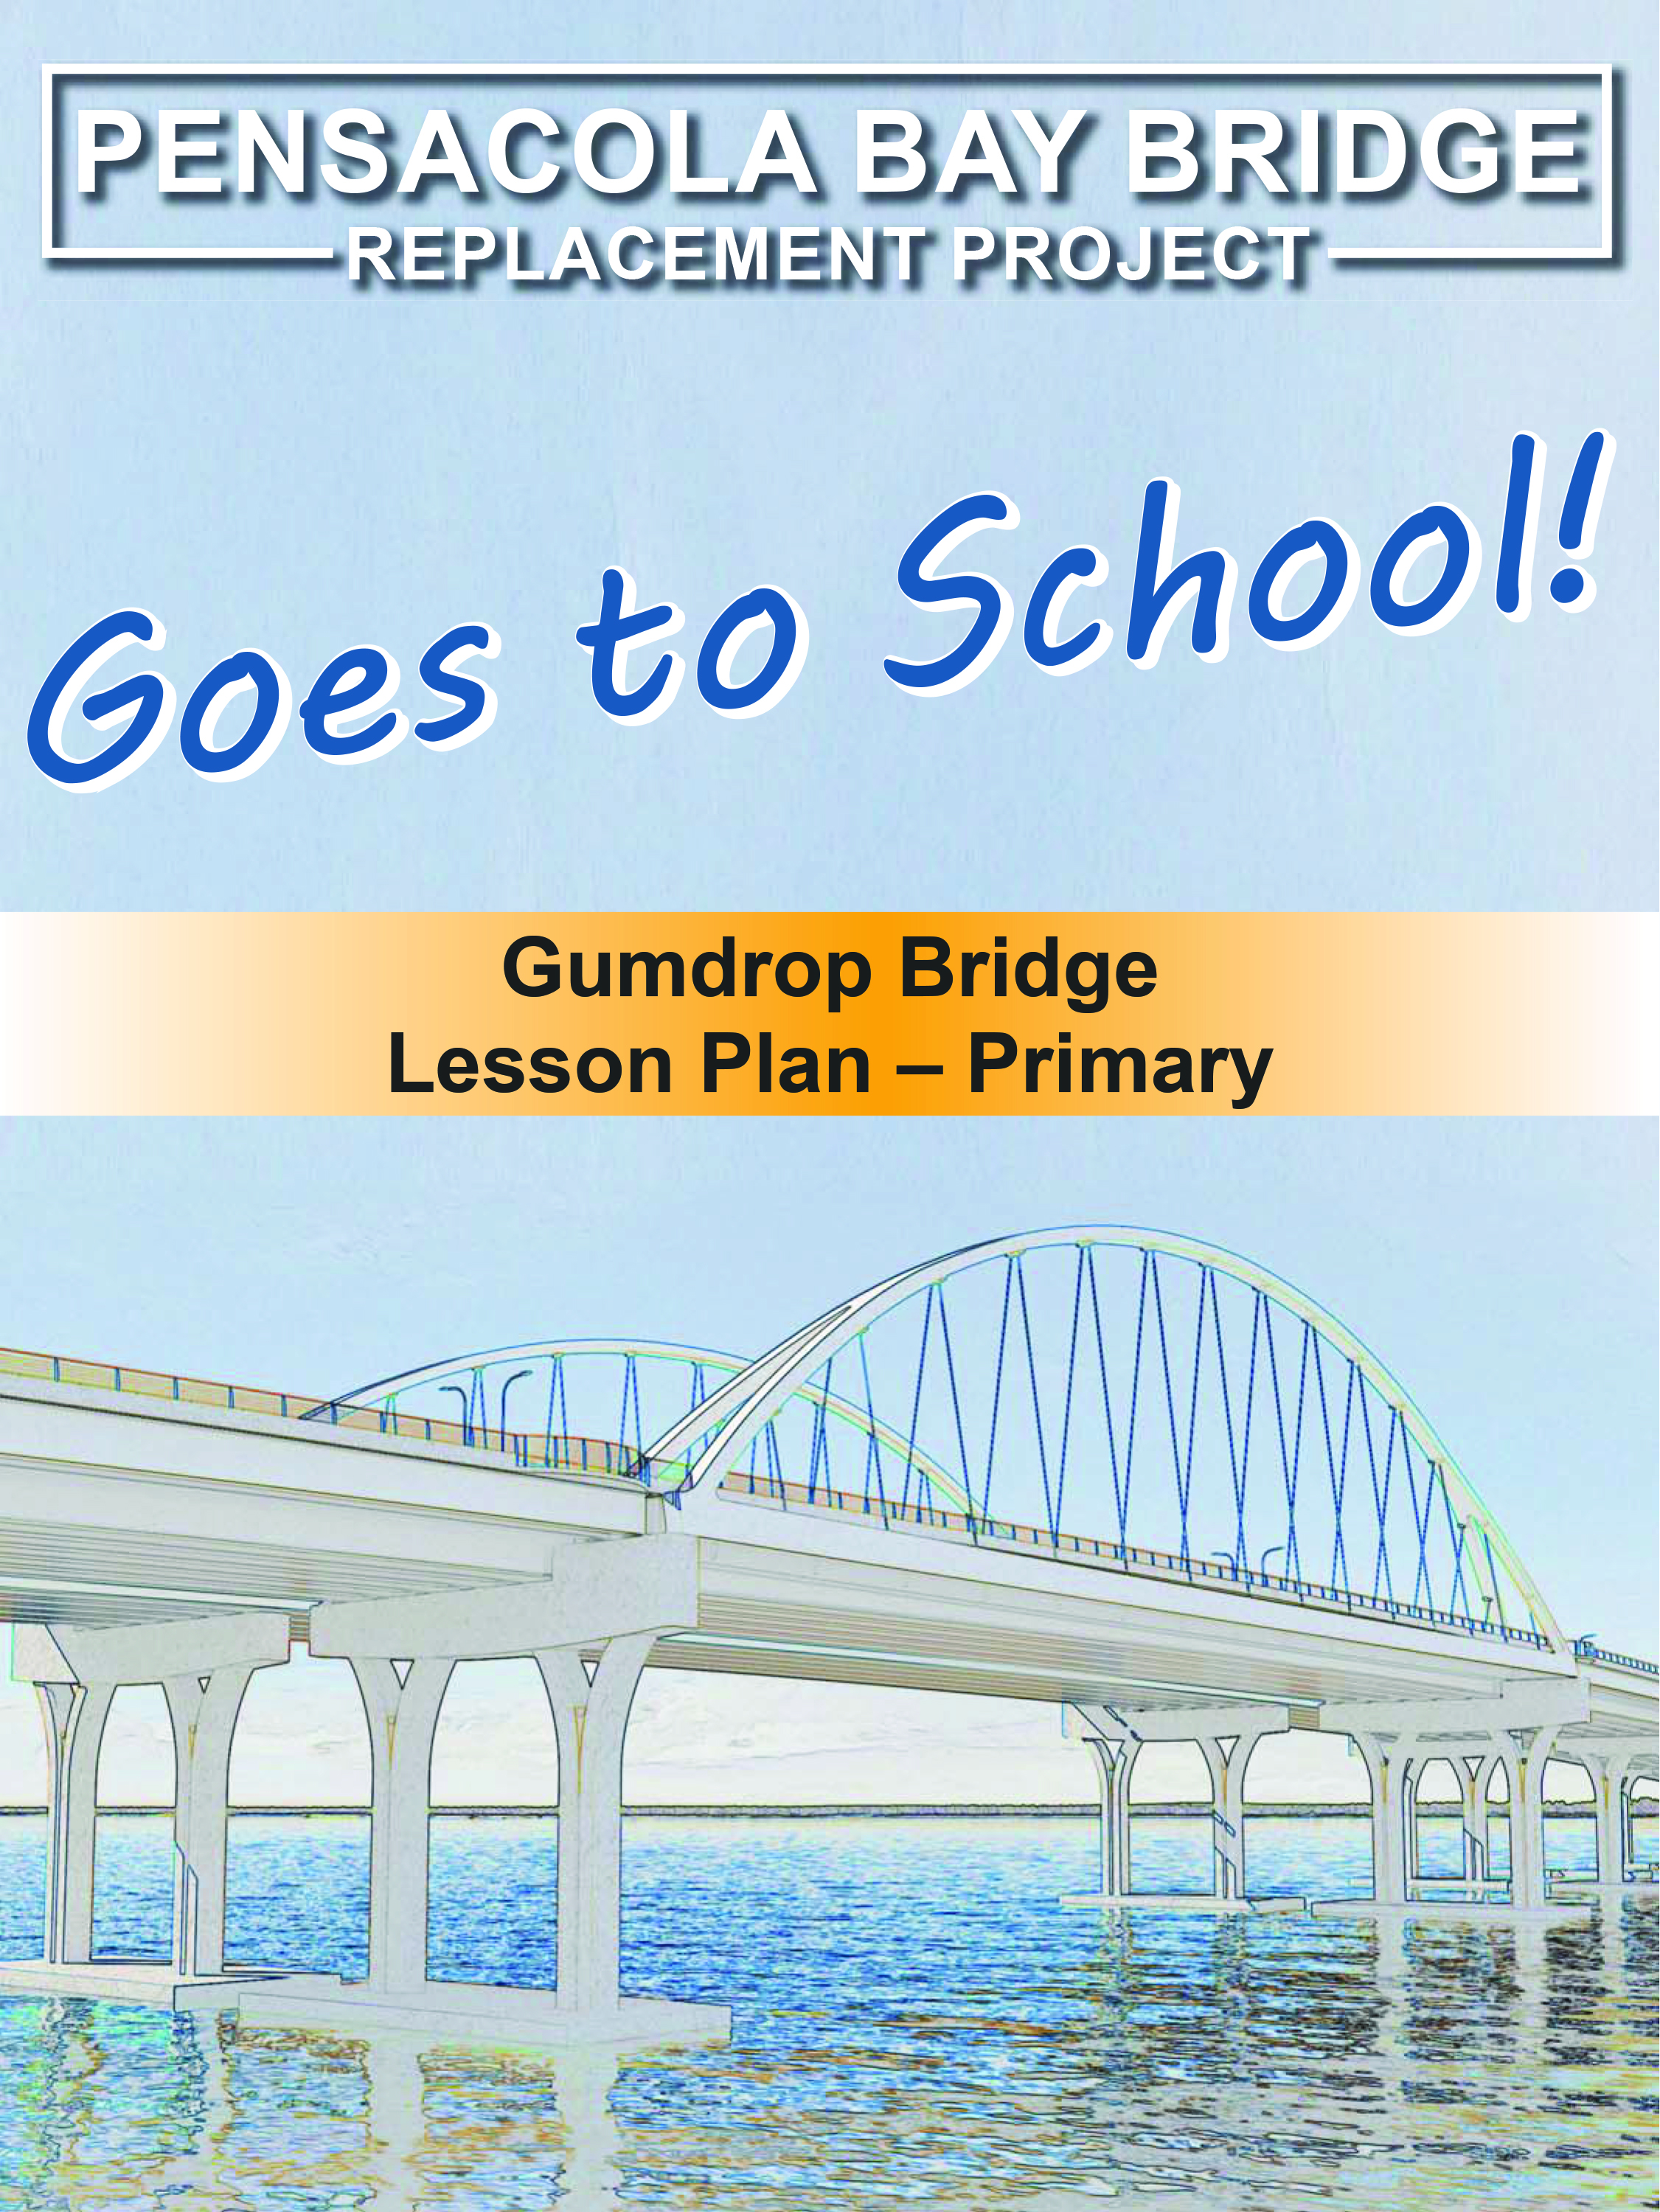 Gumdrop Bridge Lesson Plan